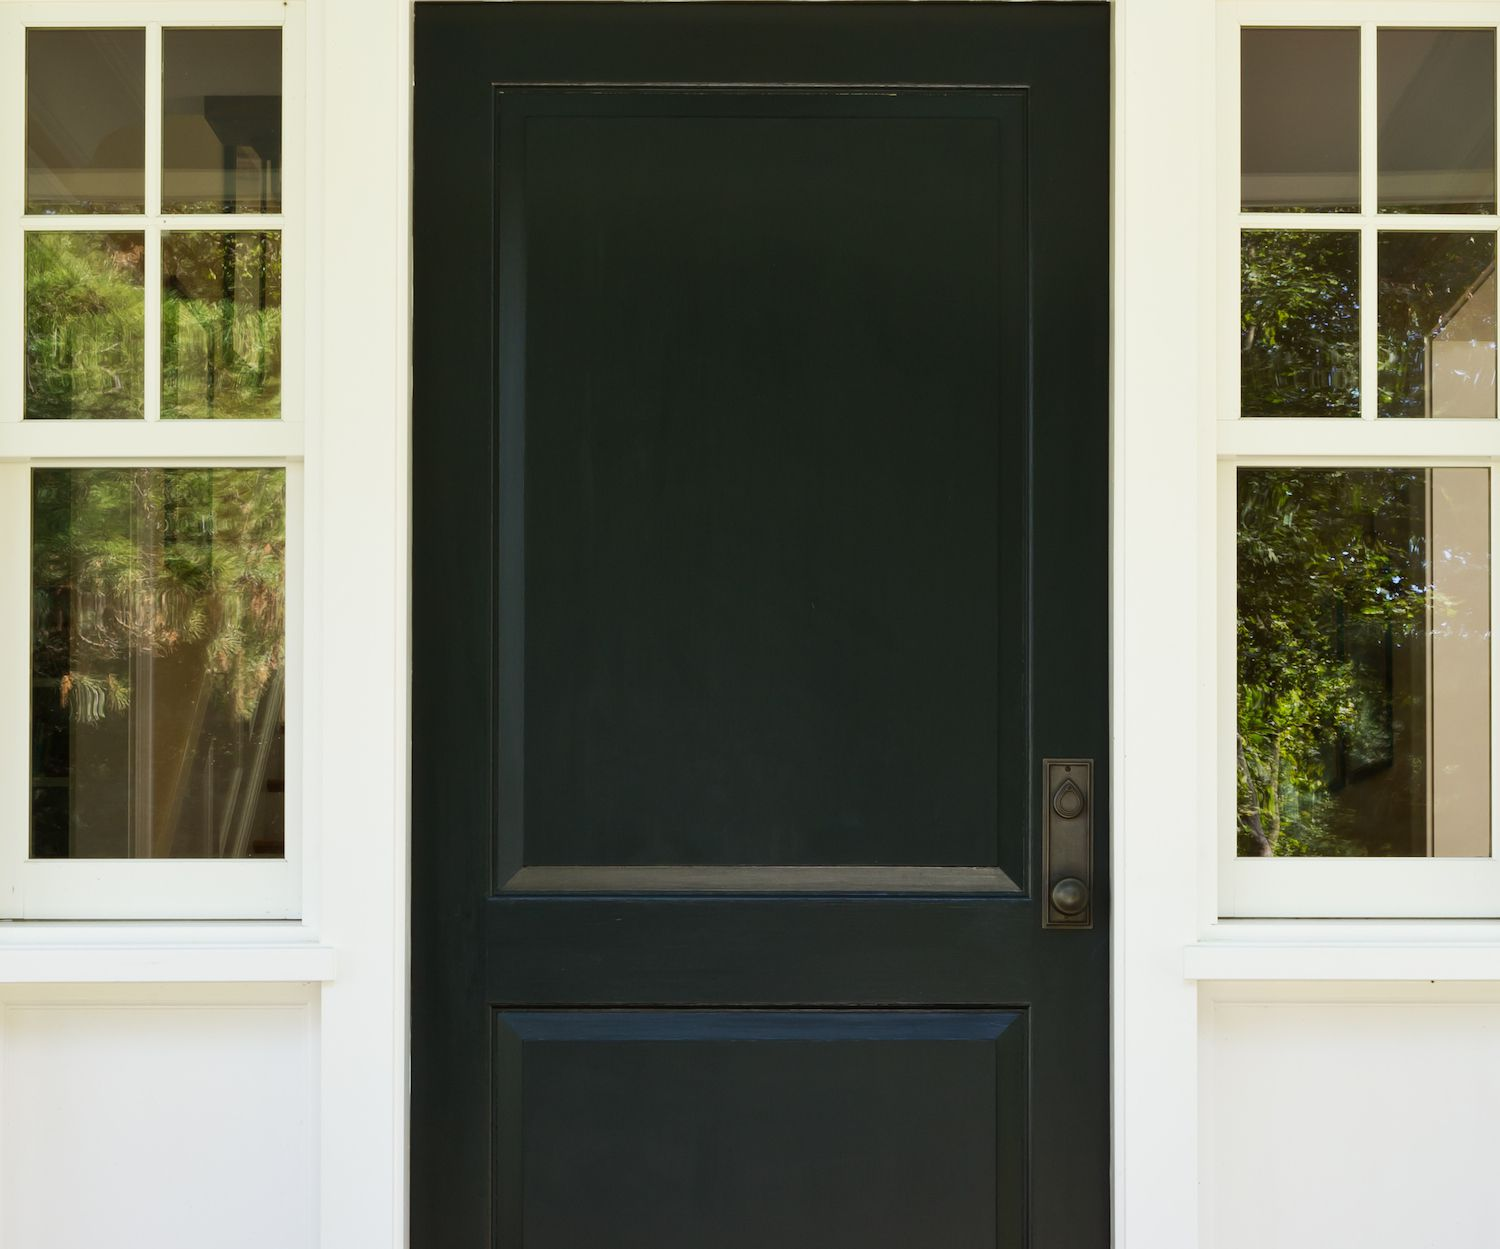 Northwest front door feng shui color choices what feng shui colours are best for your north front door rubansaba